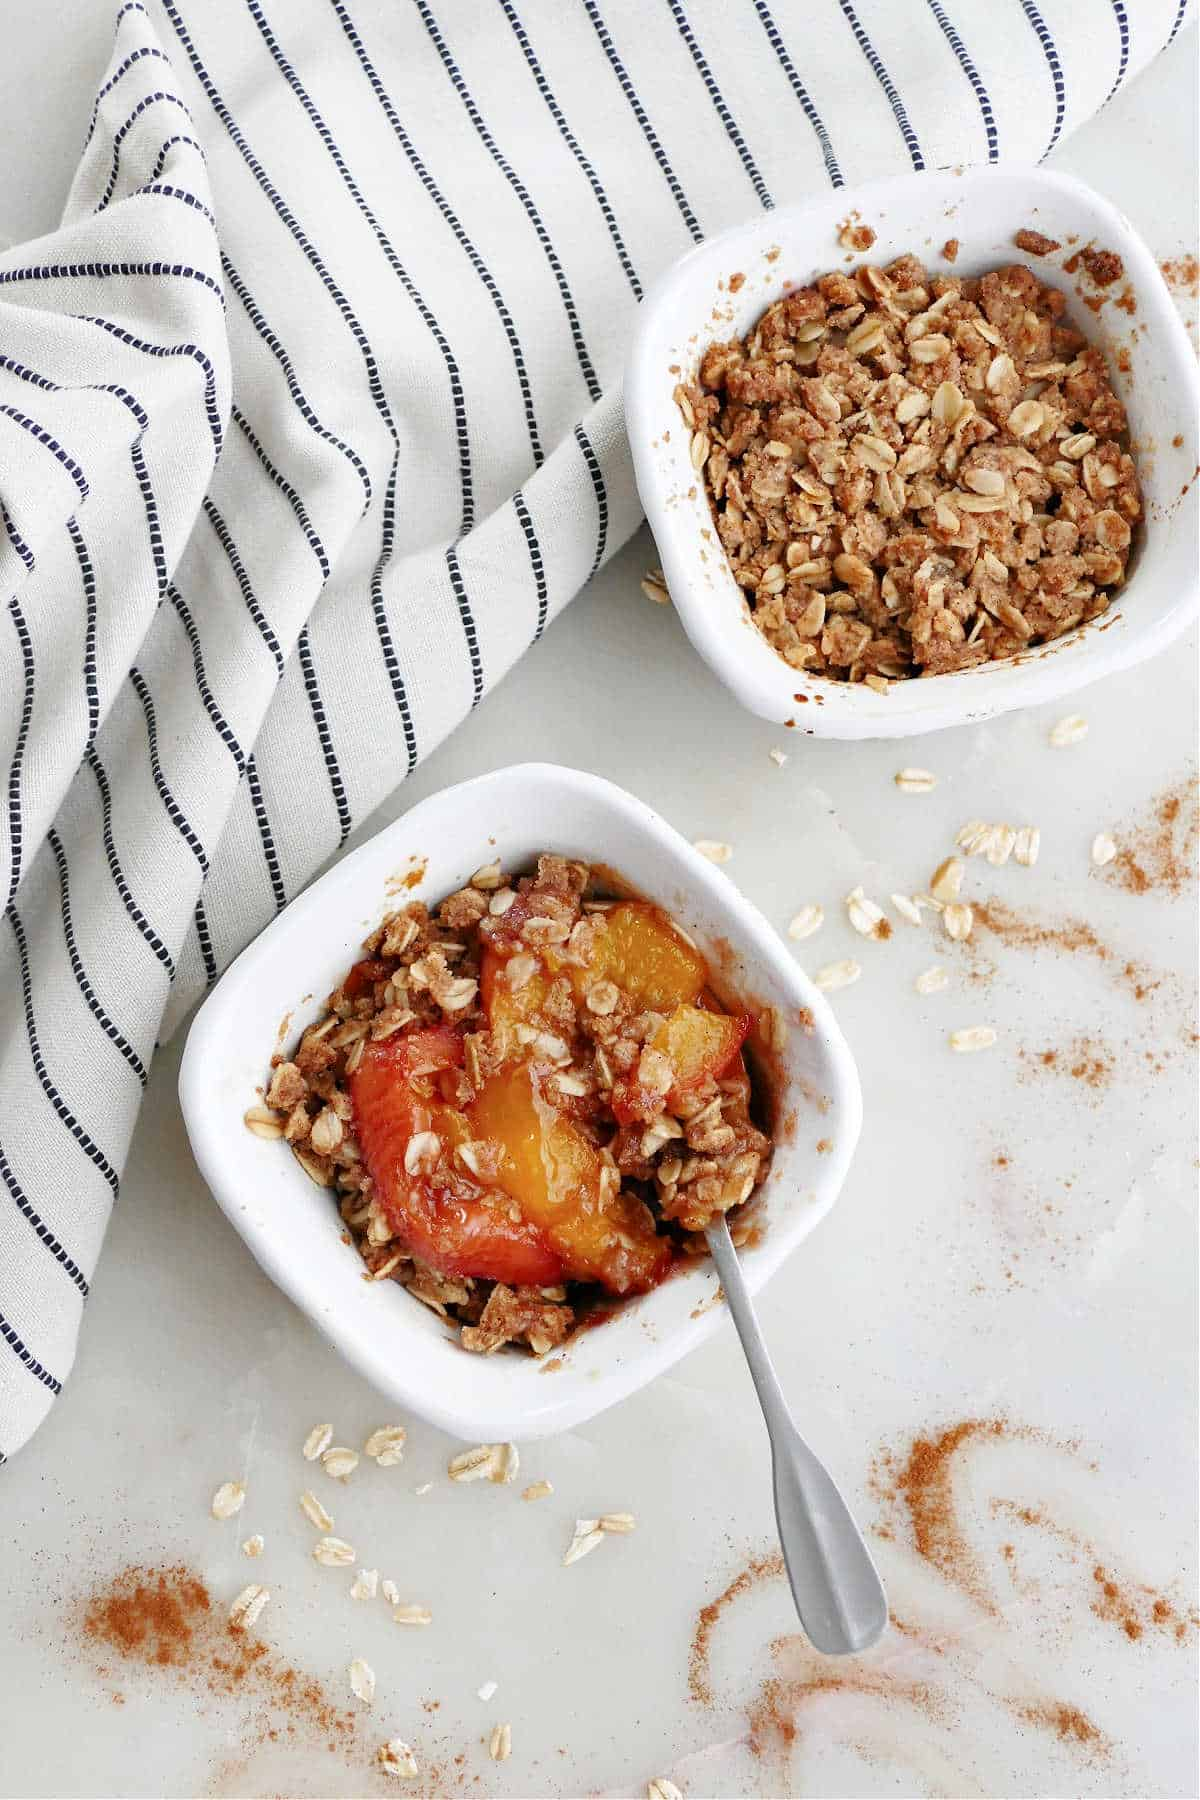 two mini peach cobblers in ramekins on a counter next to a striped napkin